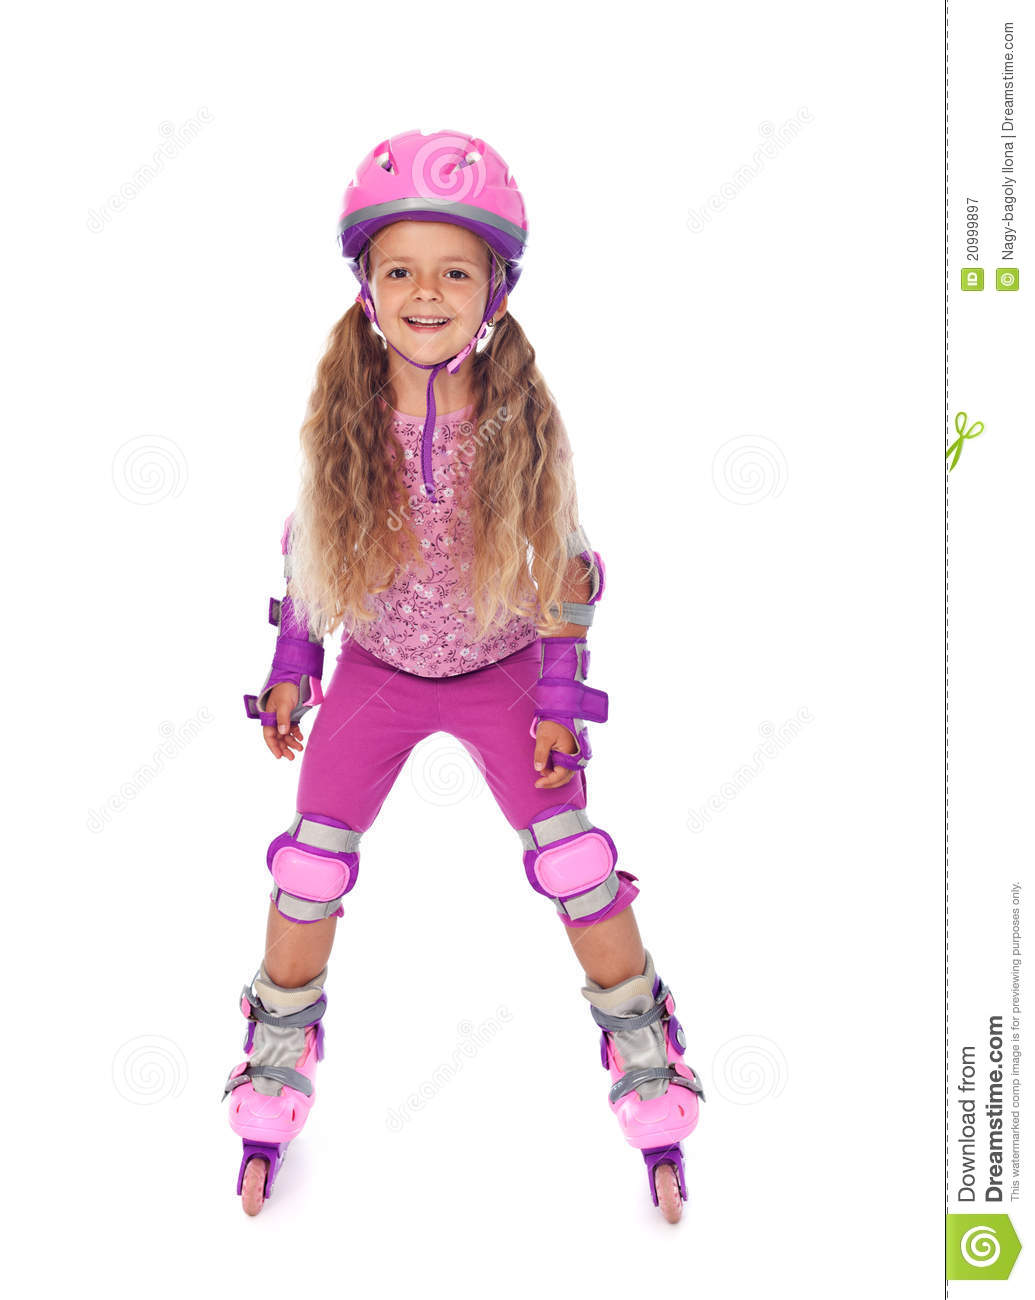 Roller Skating Little Girl Laughing - Isolated Royalty Free Stock ...